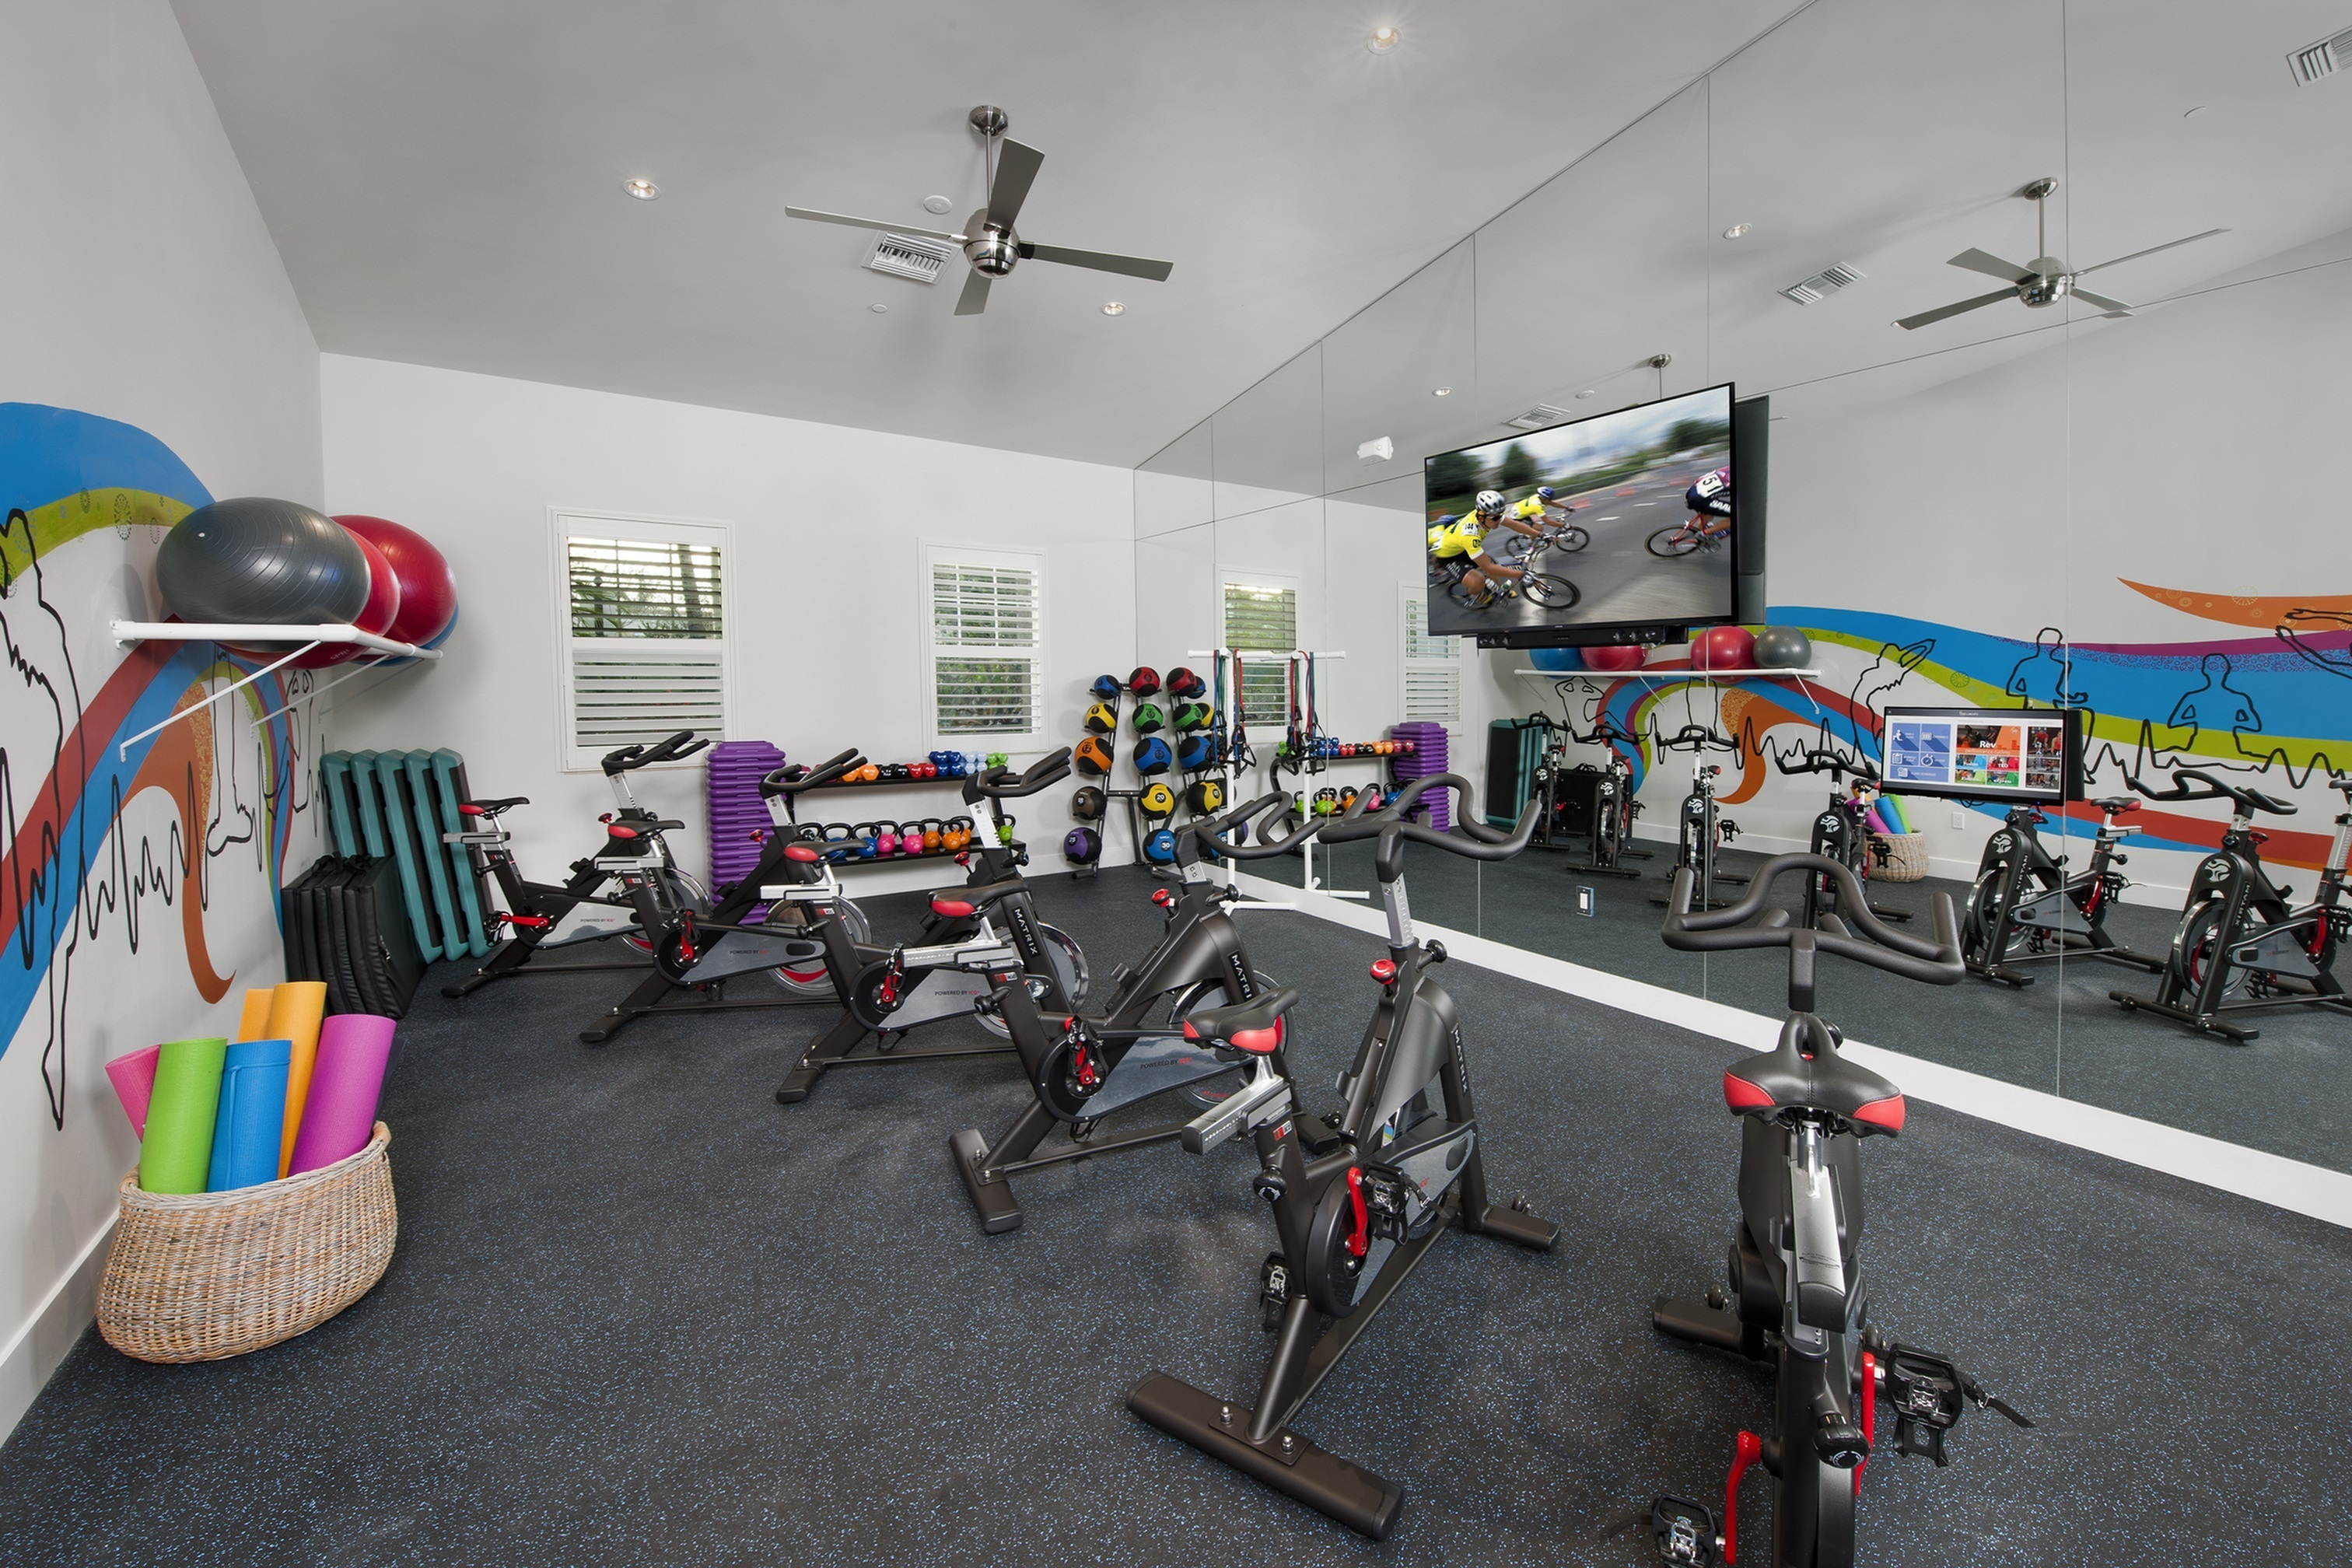 Spin room with stationary bikes, kettle bells, balls, mirrored wall and TV